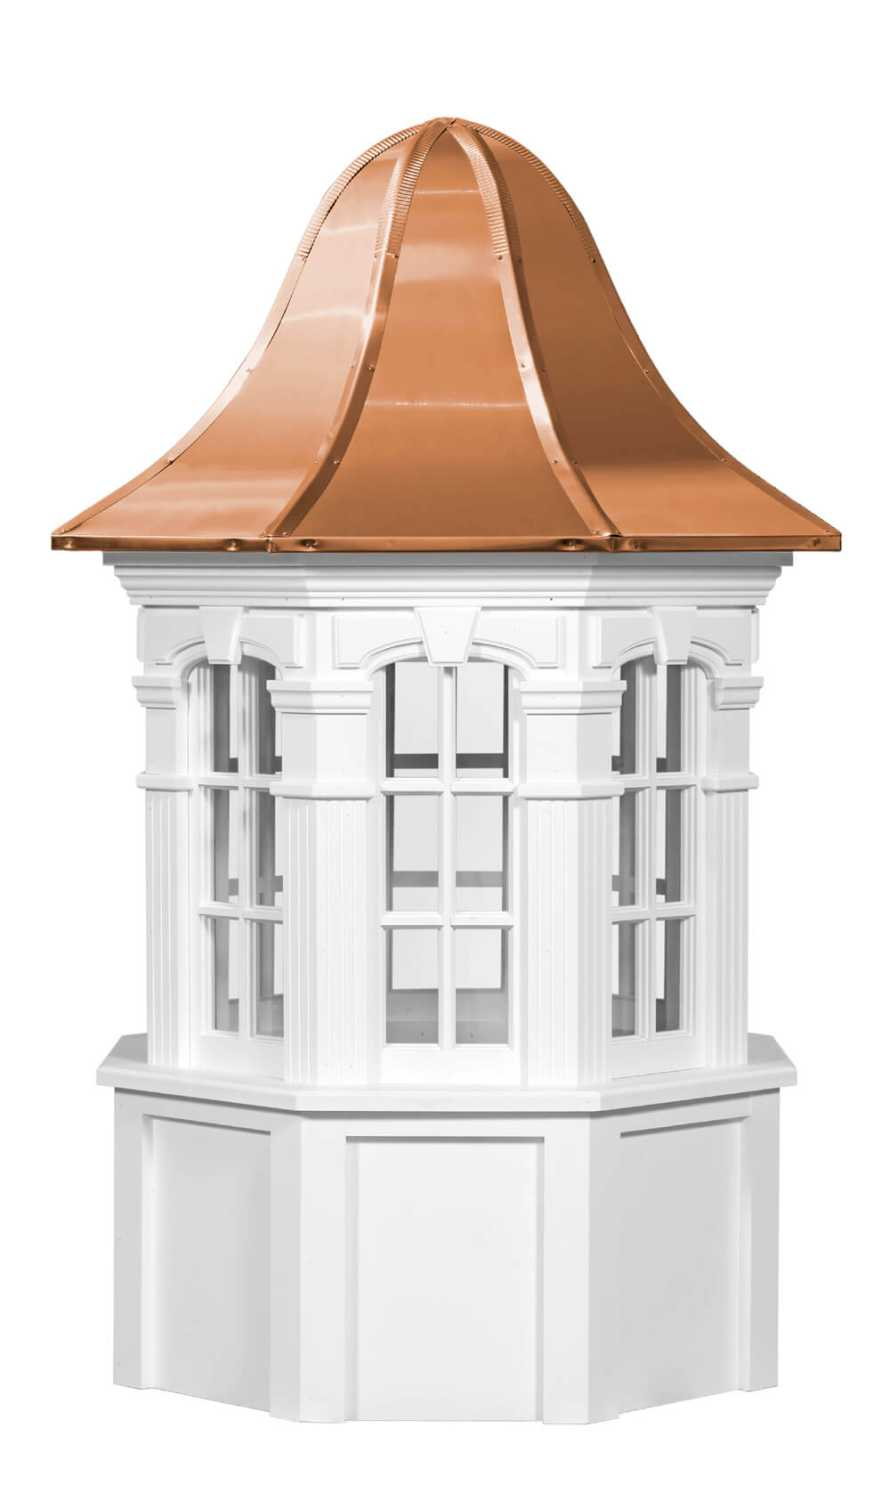 Cupolas baystate outdoor personia for Cupola with windows